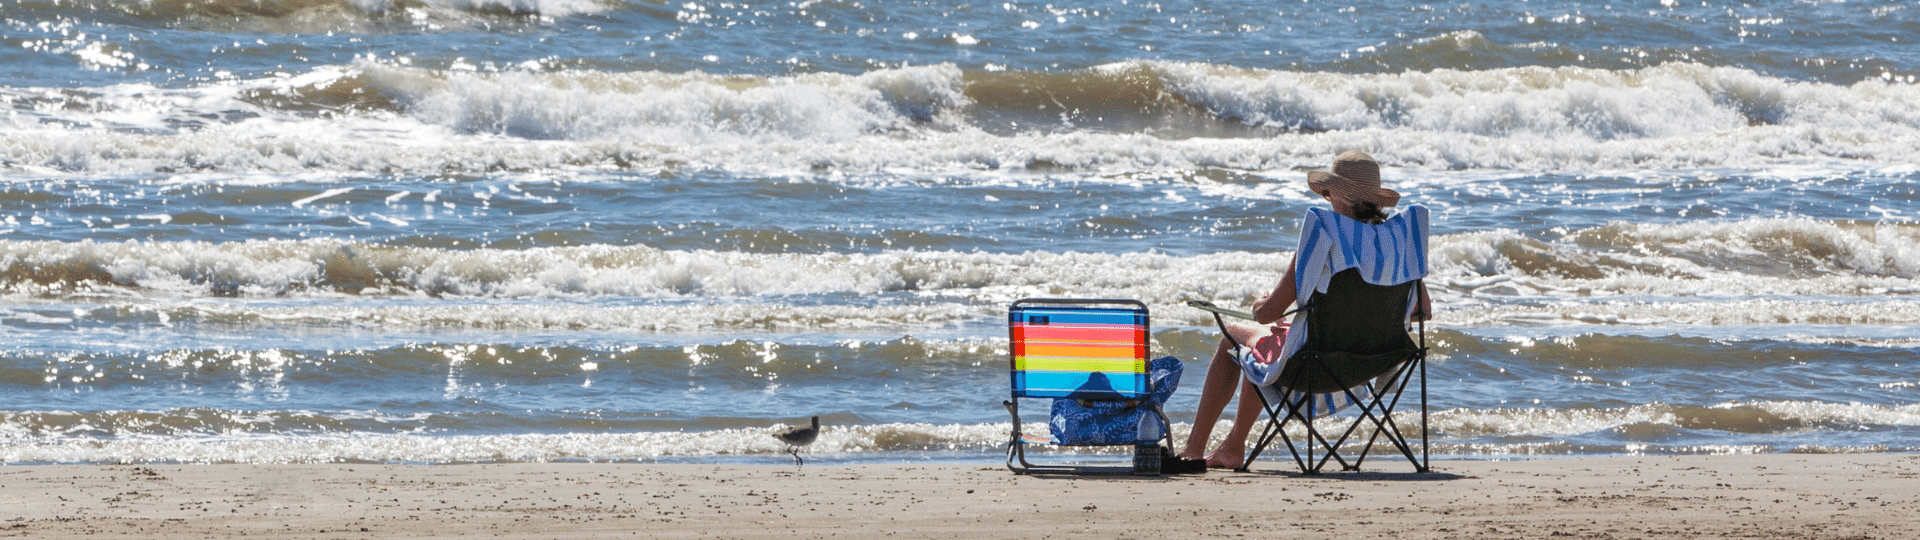 Woman relaxing on the beach in Galveston TX.